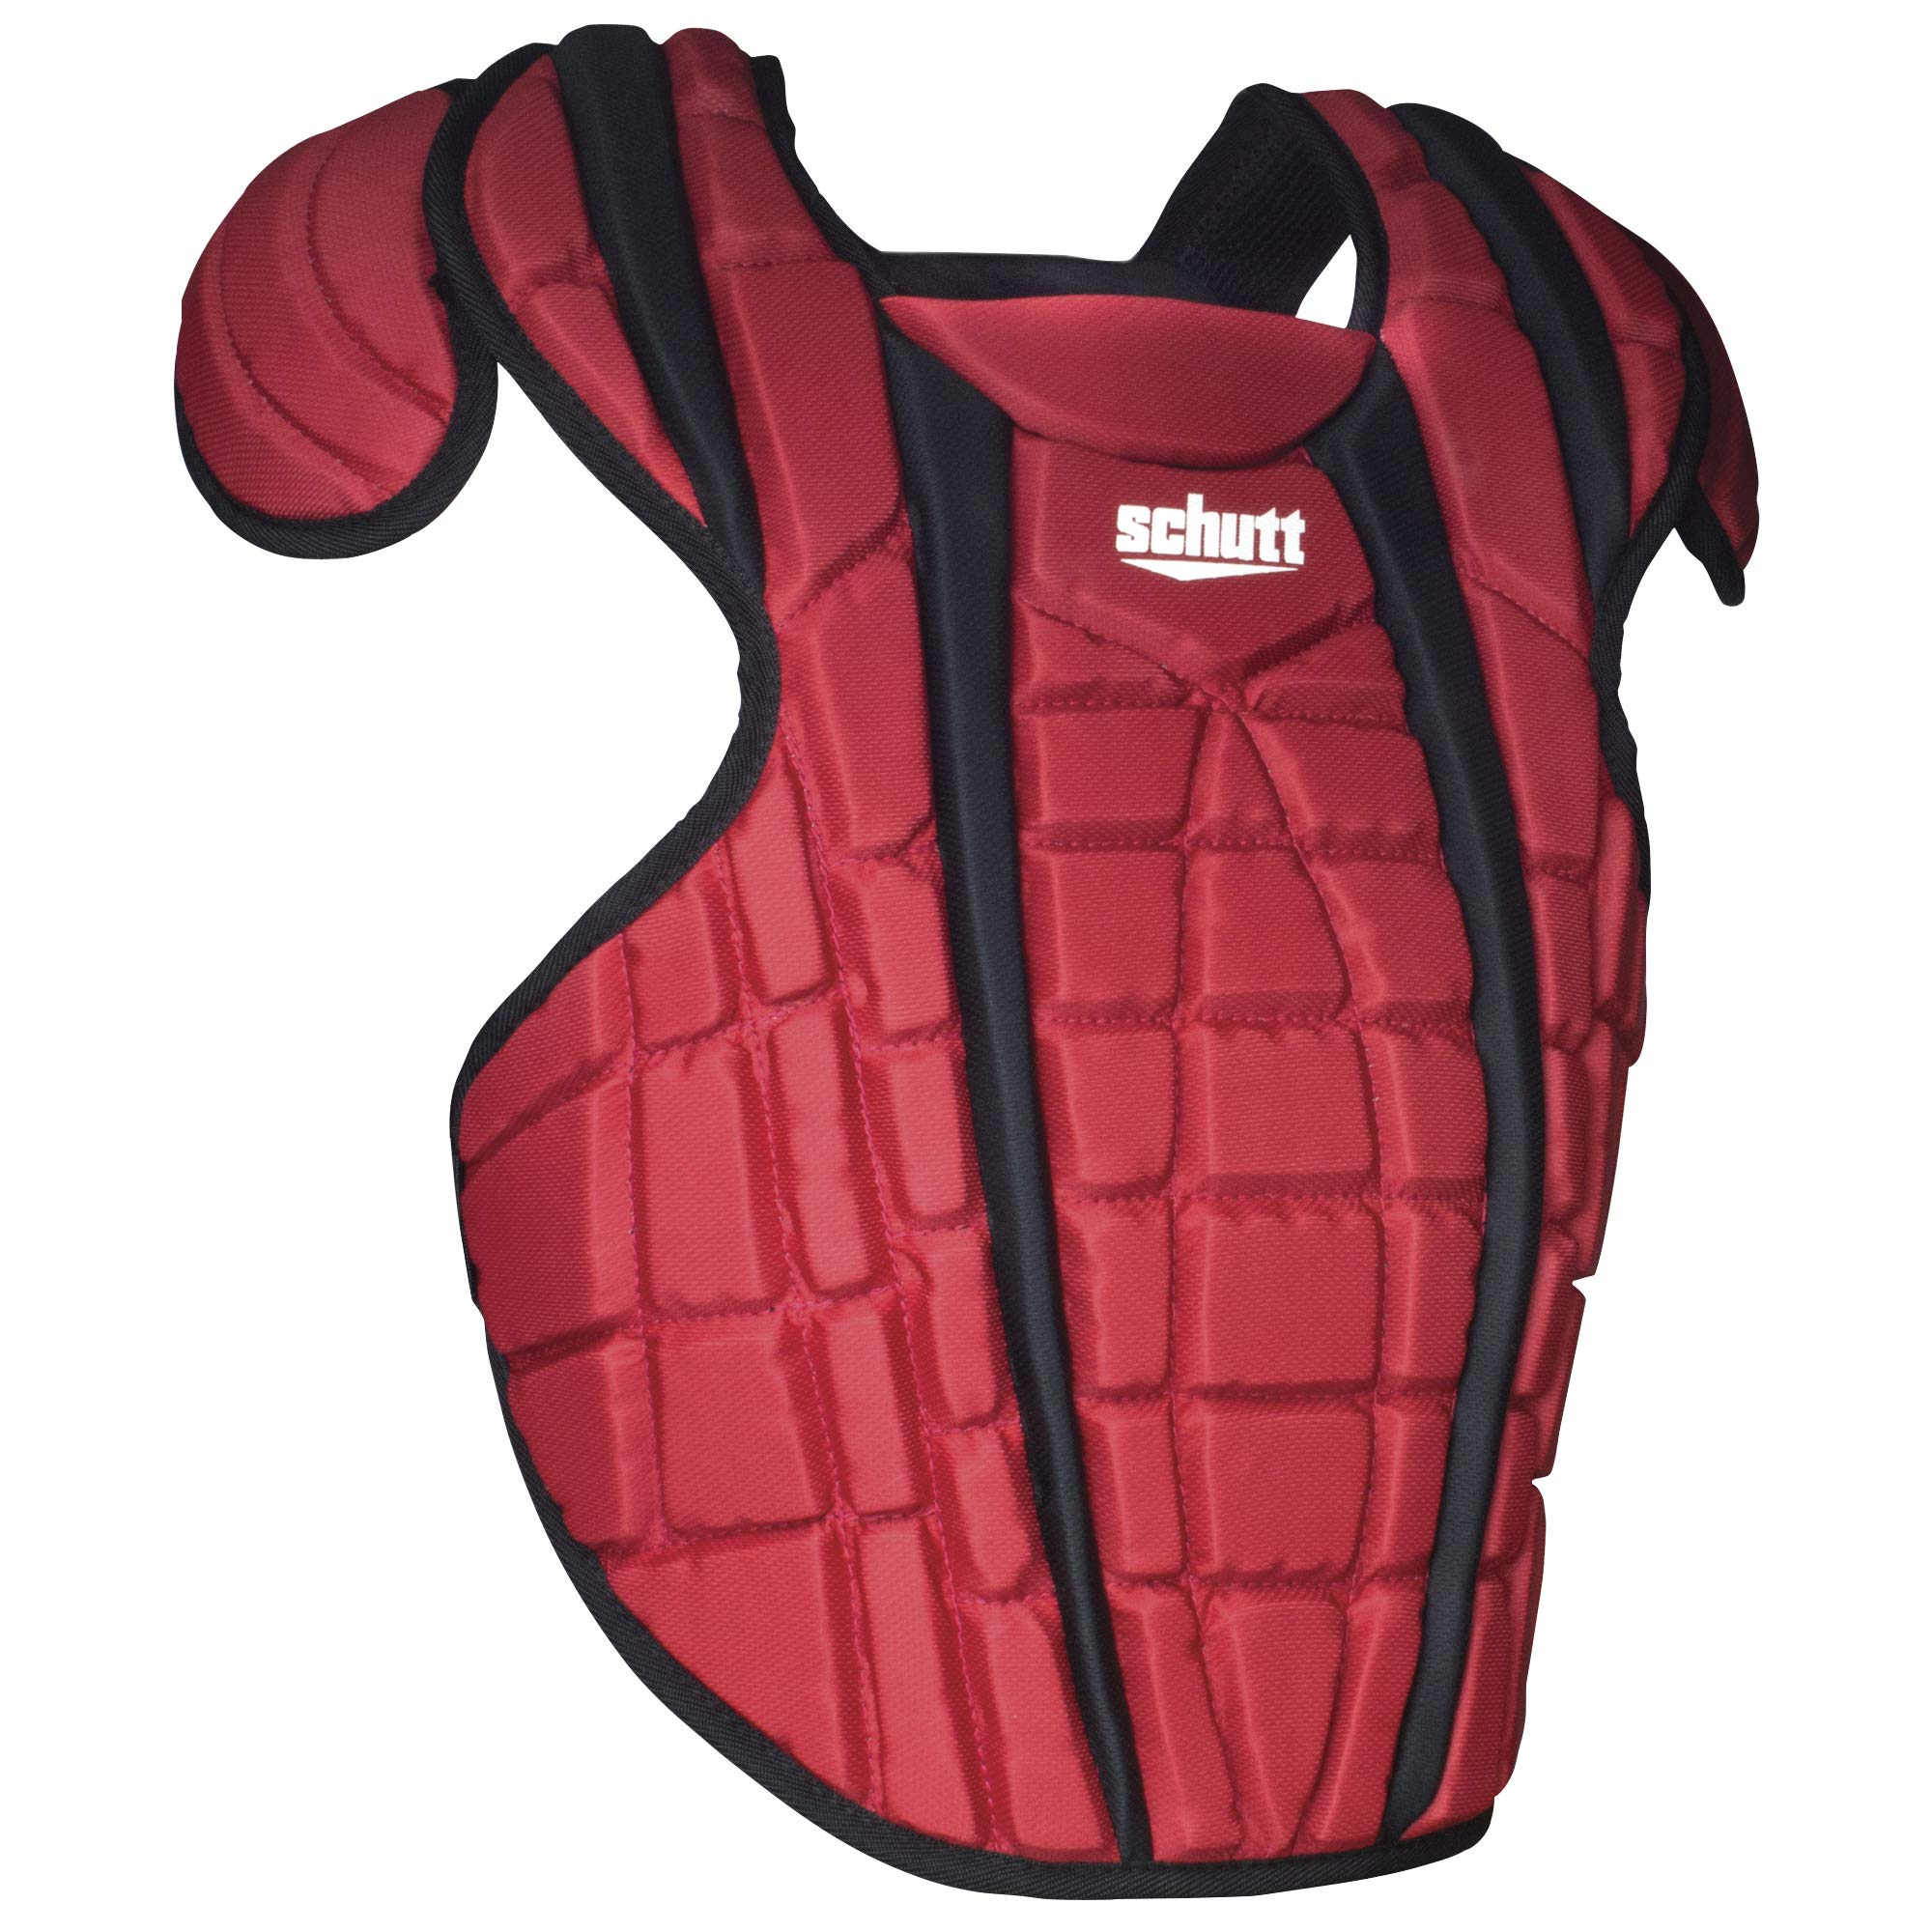 Schutt S3 Chest Protector - 12'' (EA) by Schutt